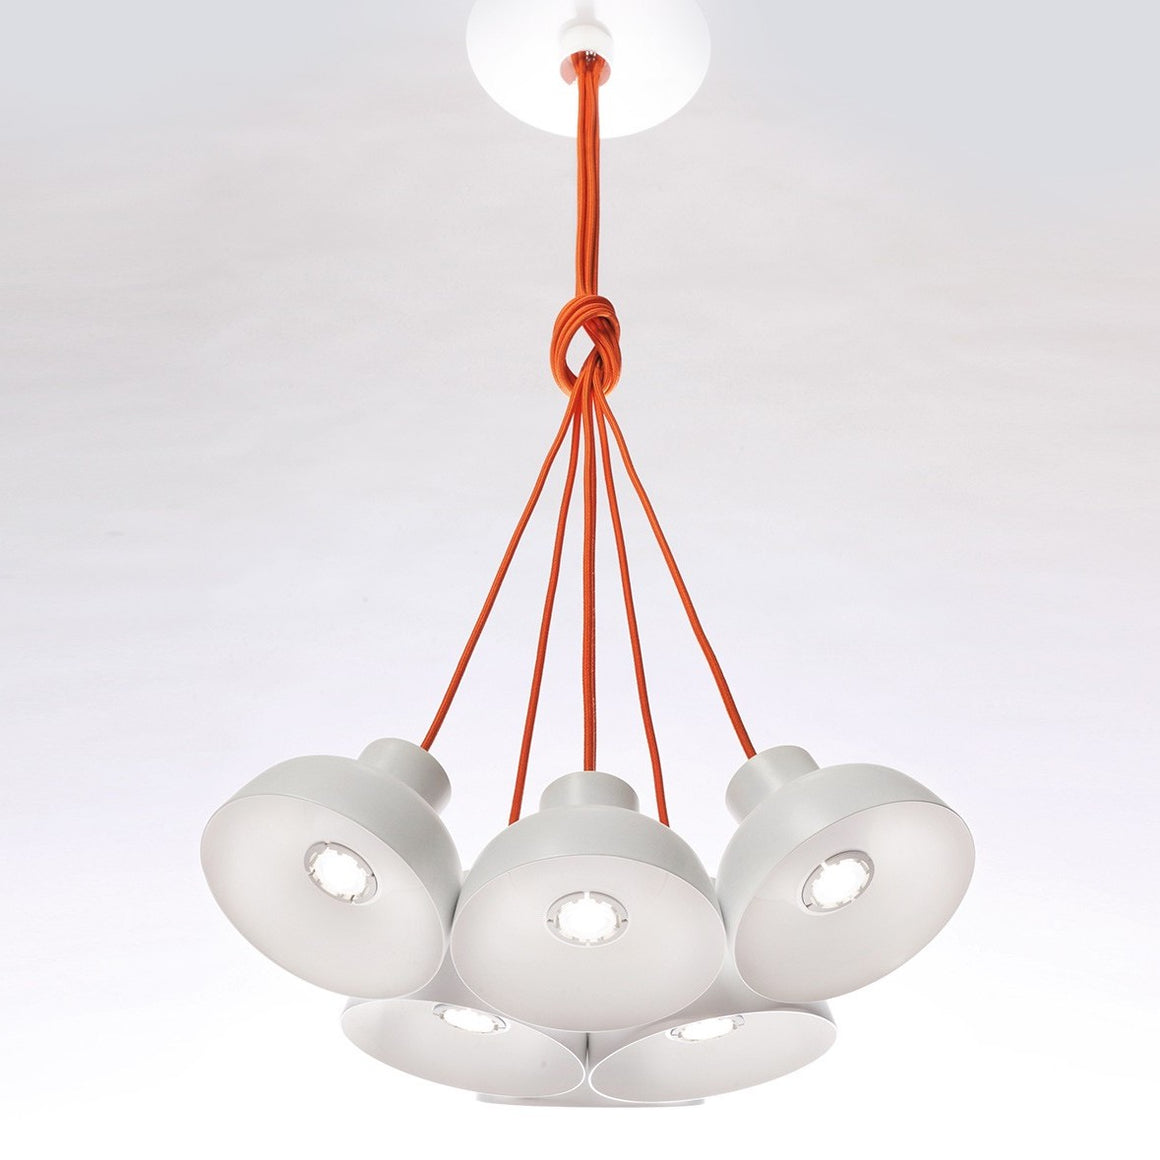 COCO 6 SUSPENSION LAMP BY ZAVA - Luxxdesign.com - 1